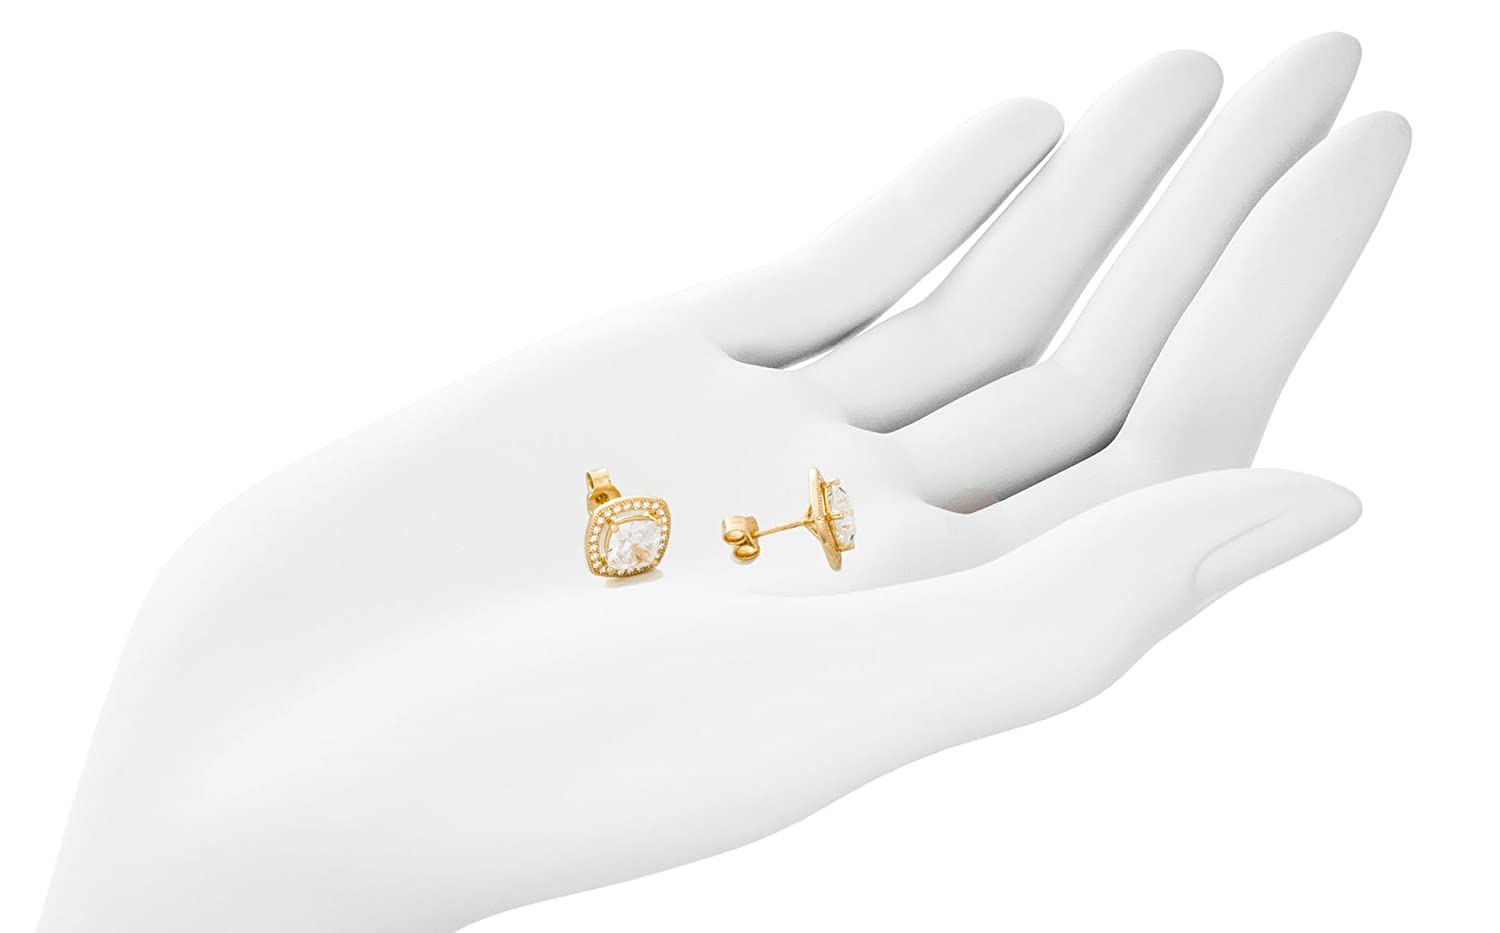 Solid Gold Halo Earrings of CZ in 14K Yellow Gold 1 Large Princess Cut CZ with Halo of 24 Ideal Cut CZ 2.4g